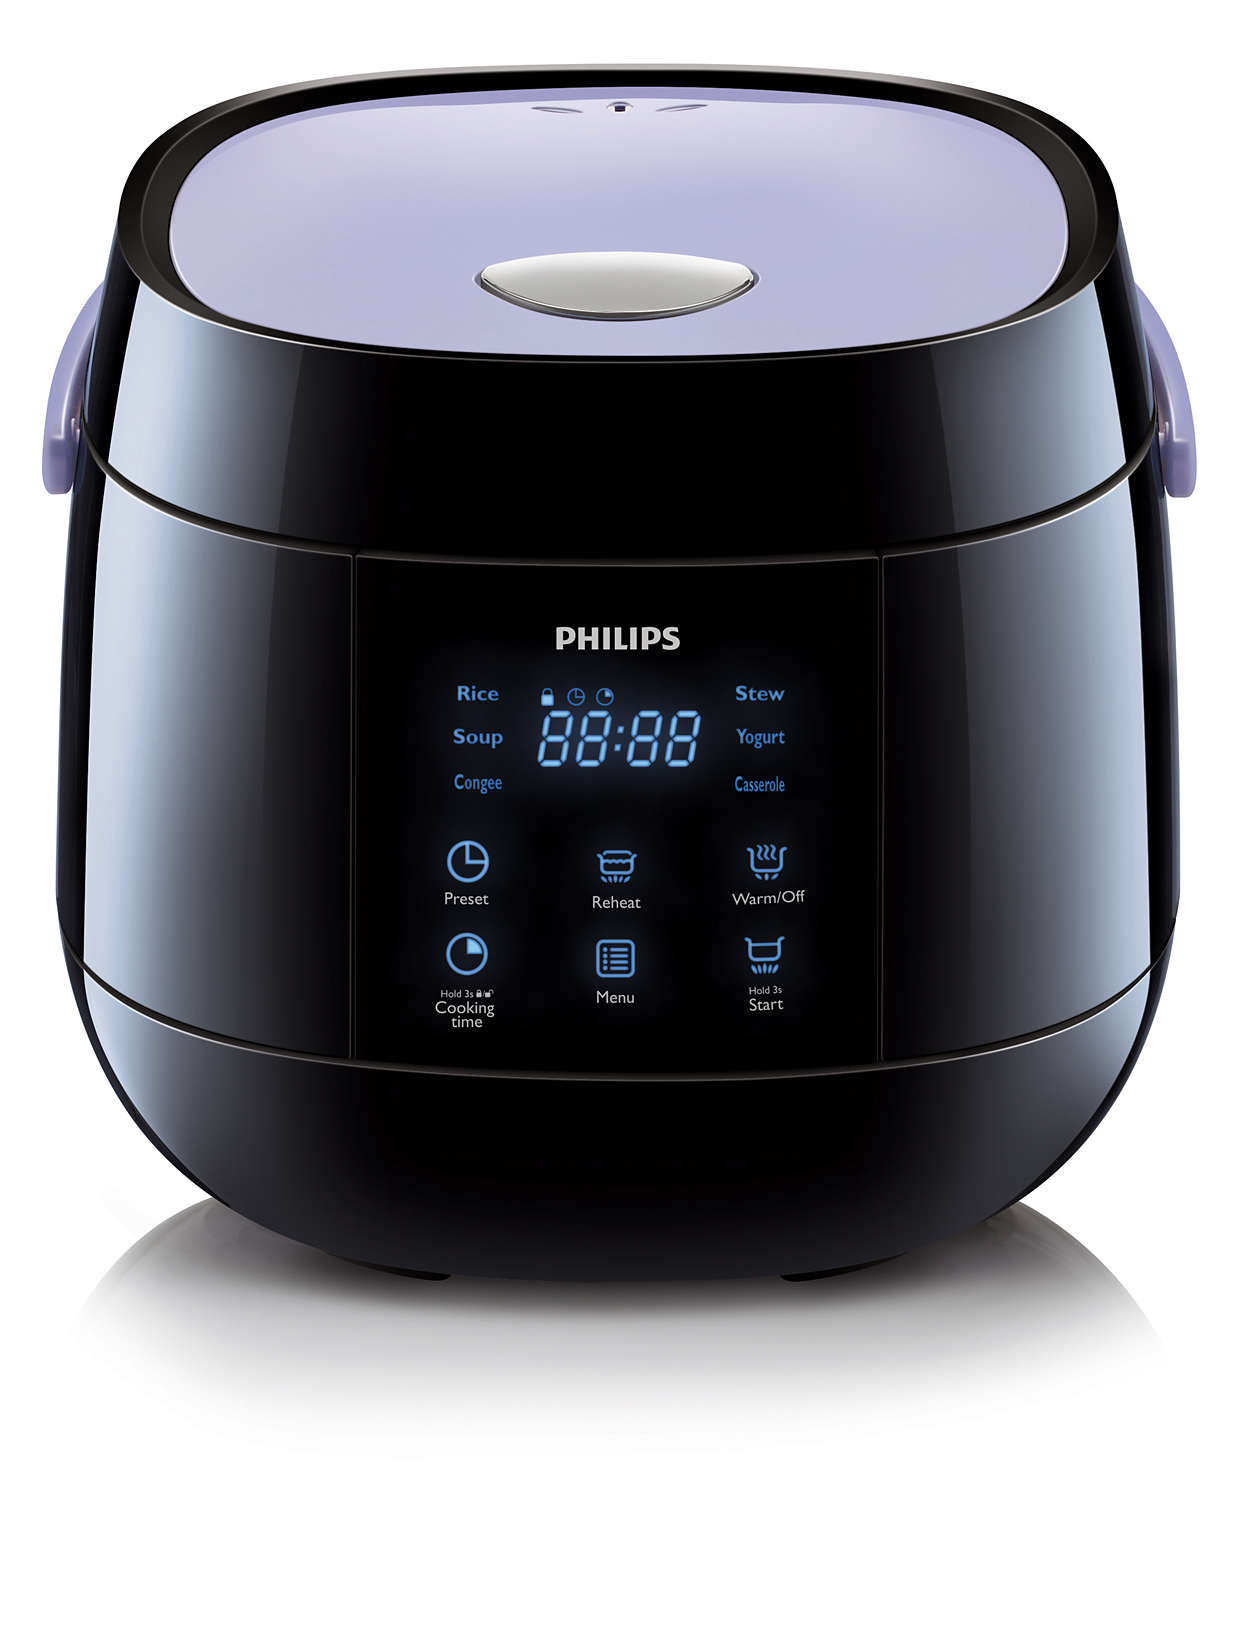 Image result for philips HD3060 rice cooker